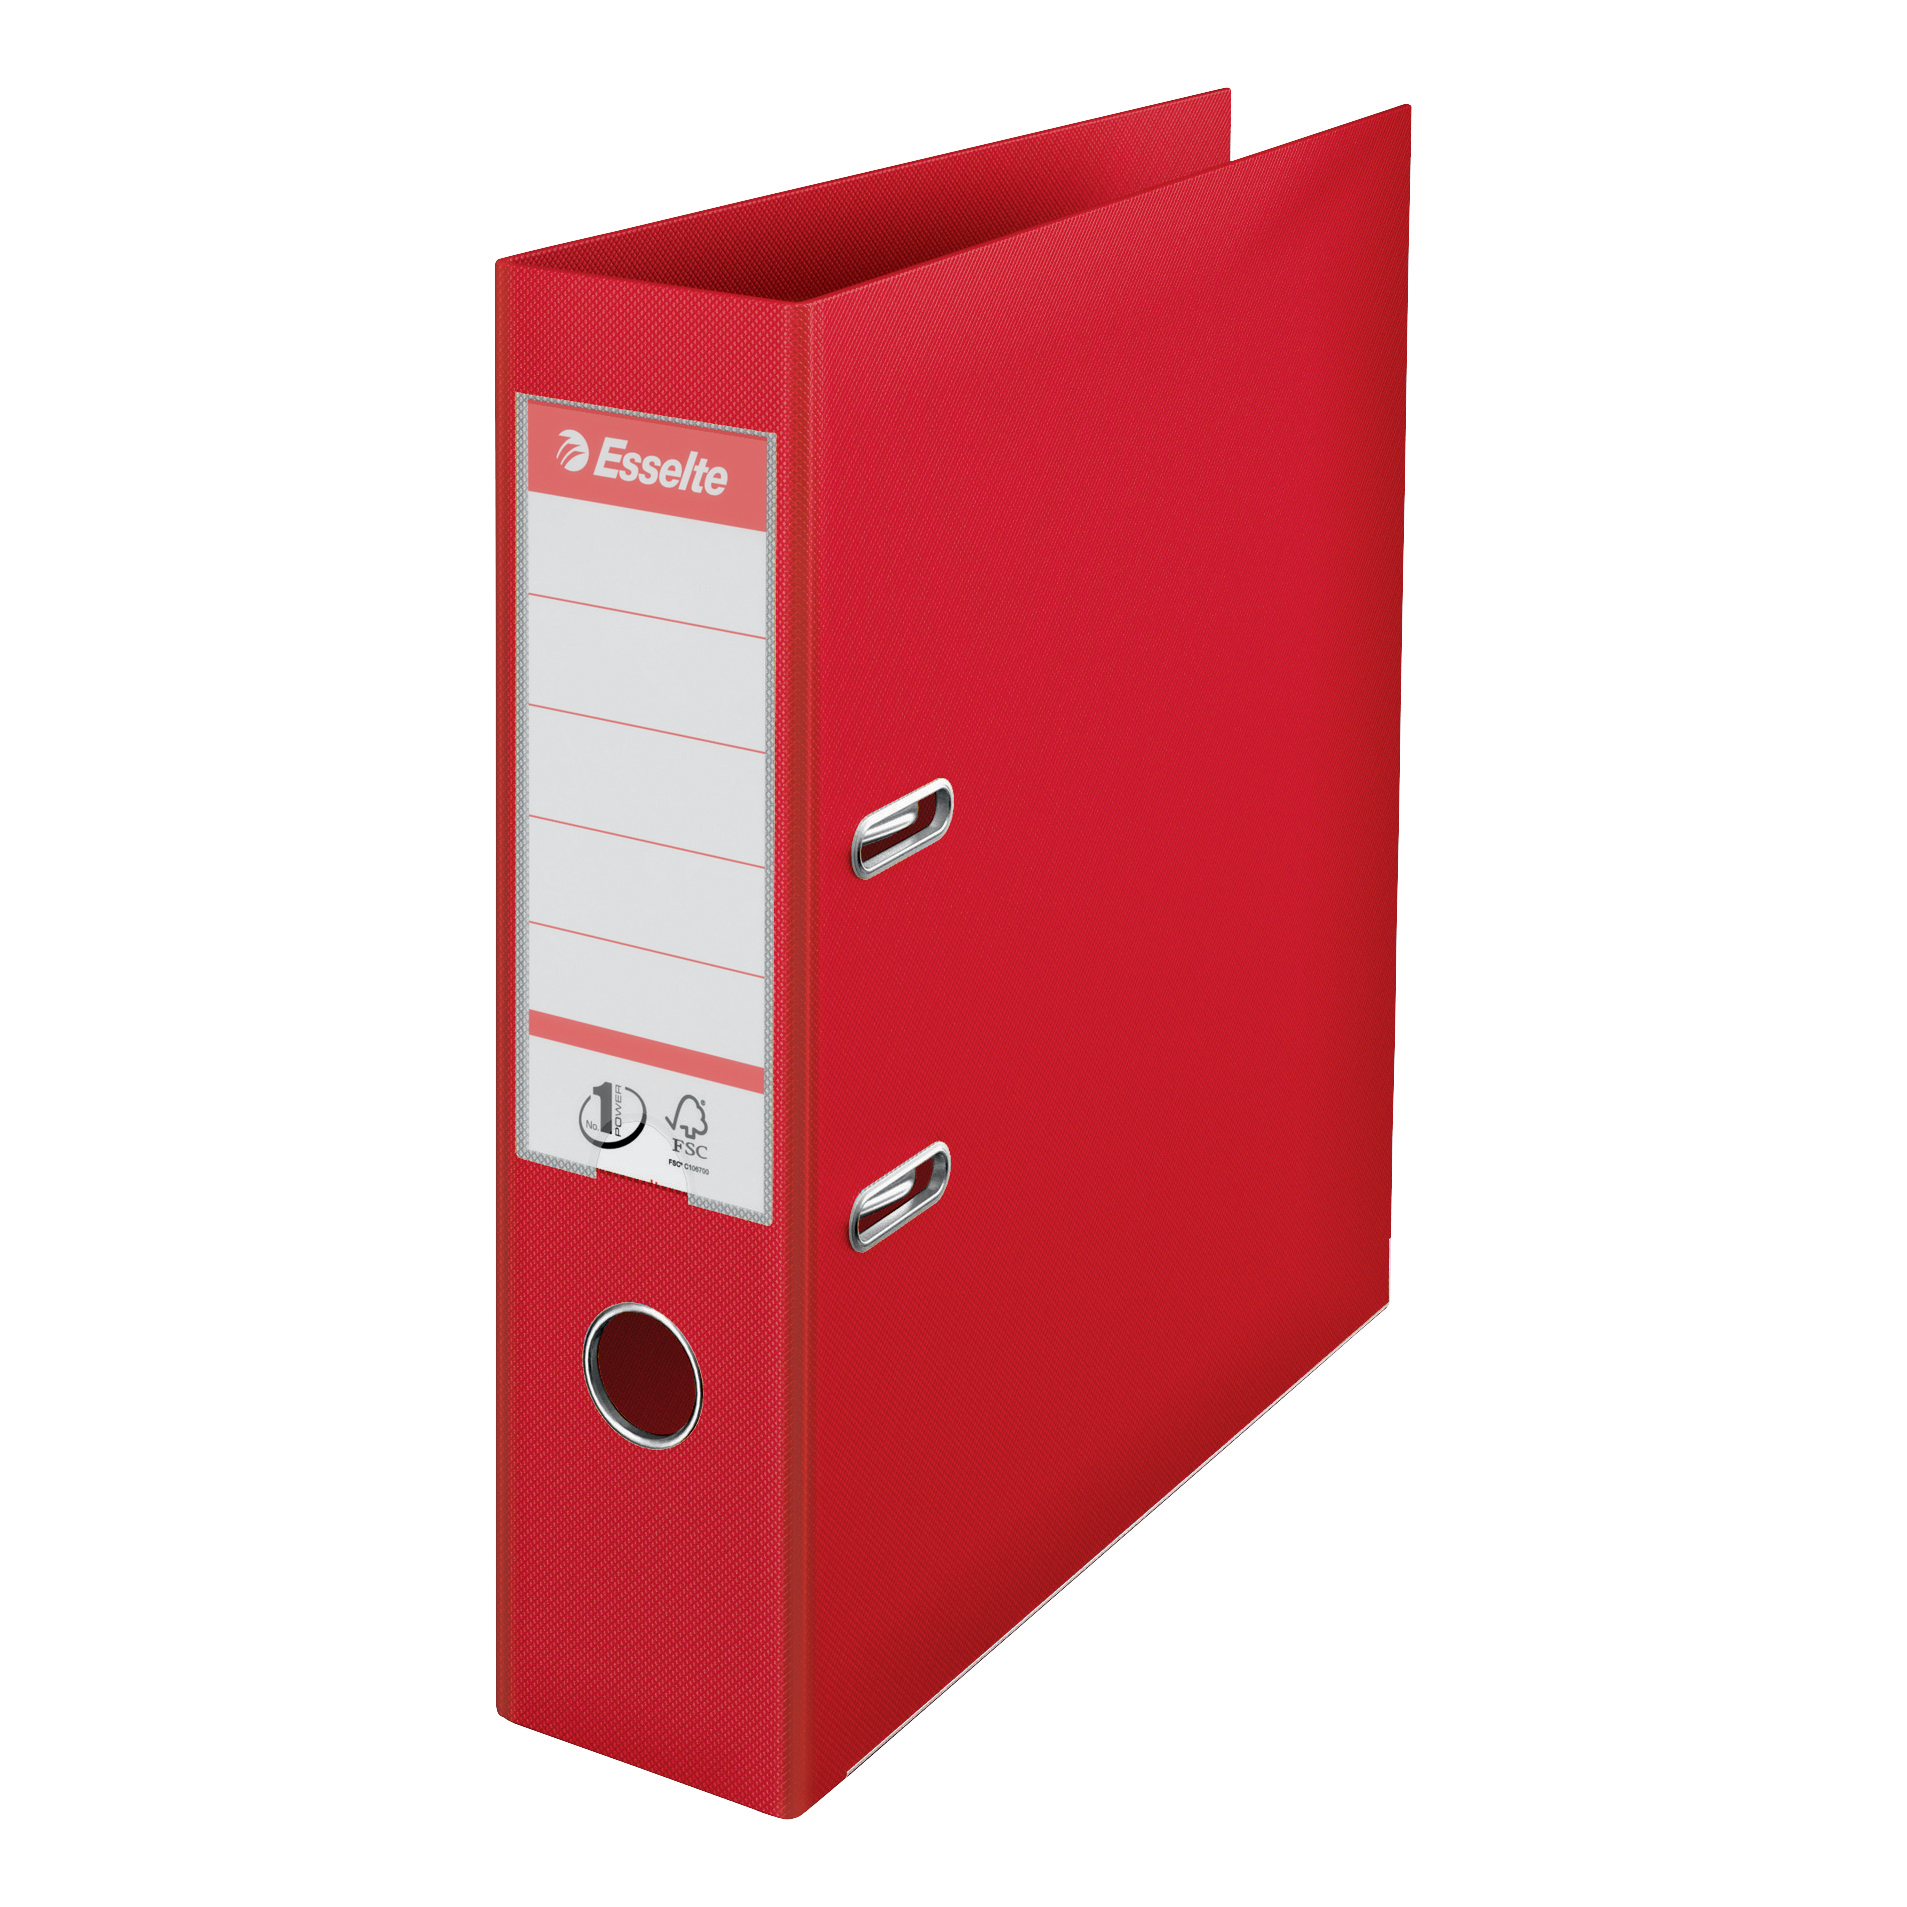 Esselte No. 1 Lever Arch File PP Slotted 75mm Spine A4 Red Ref 879983